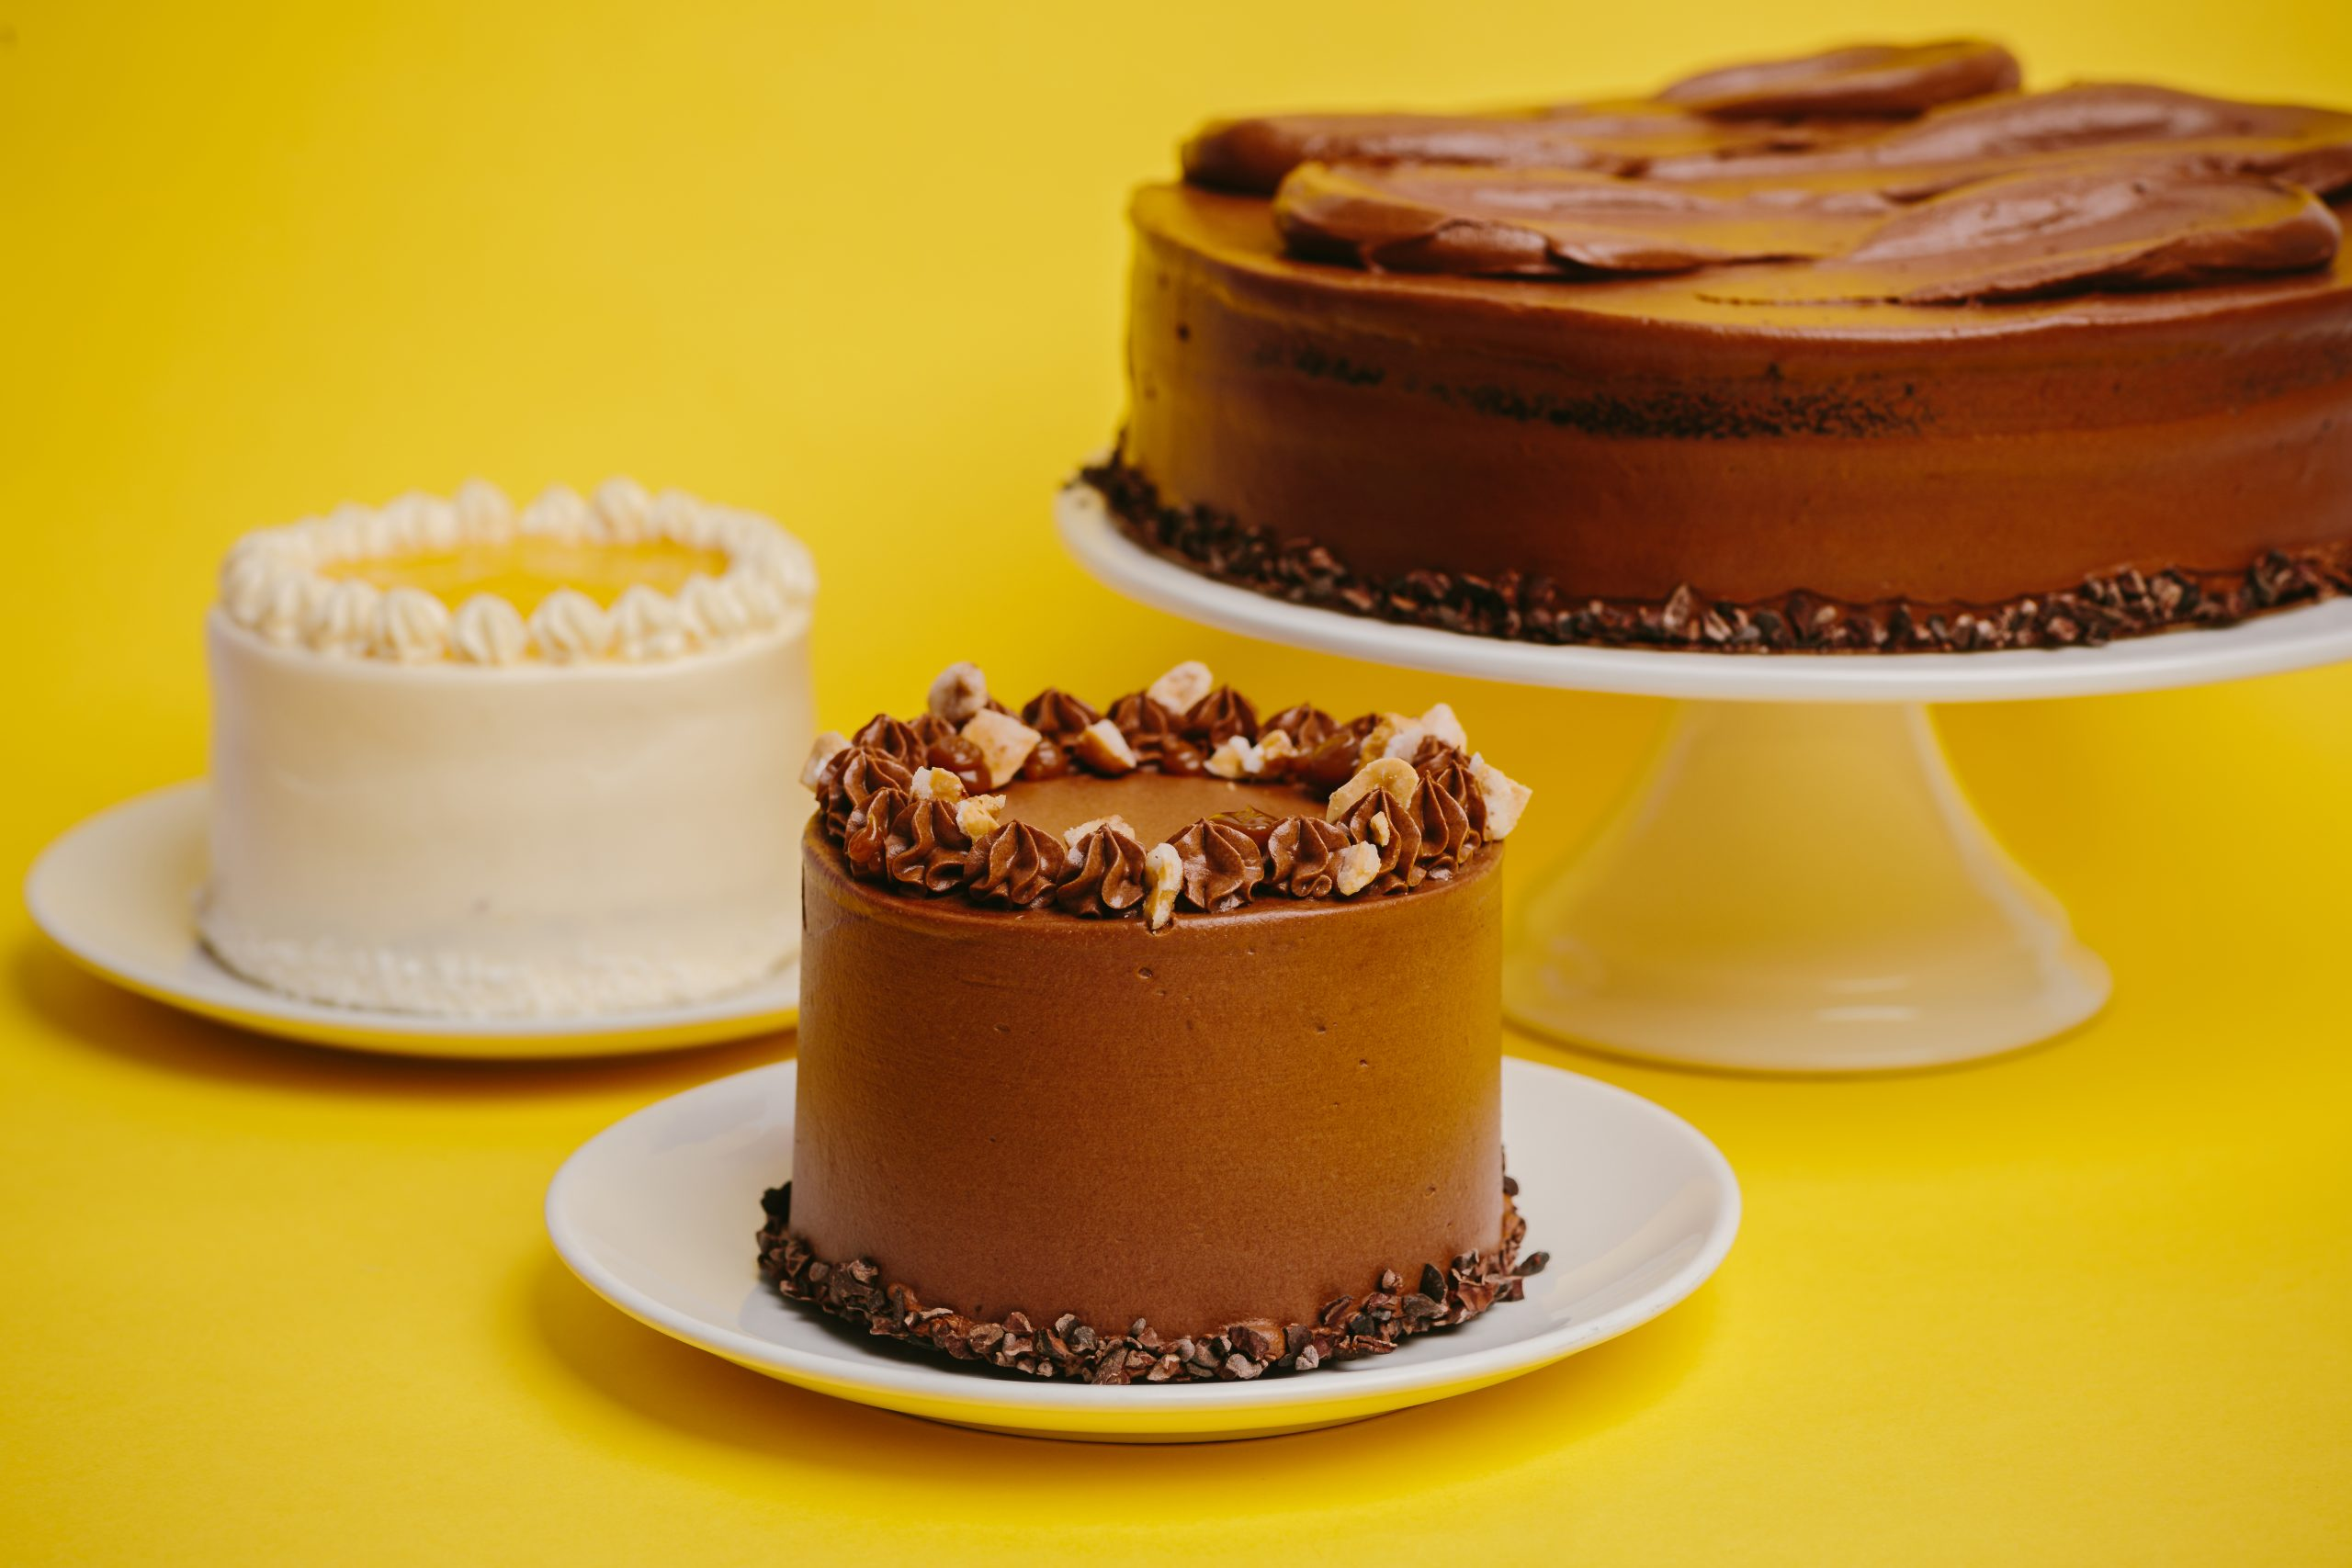 Piece of cake: 5 best Hong Kong cake delivery services — Hashtag Legend